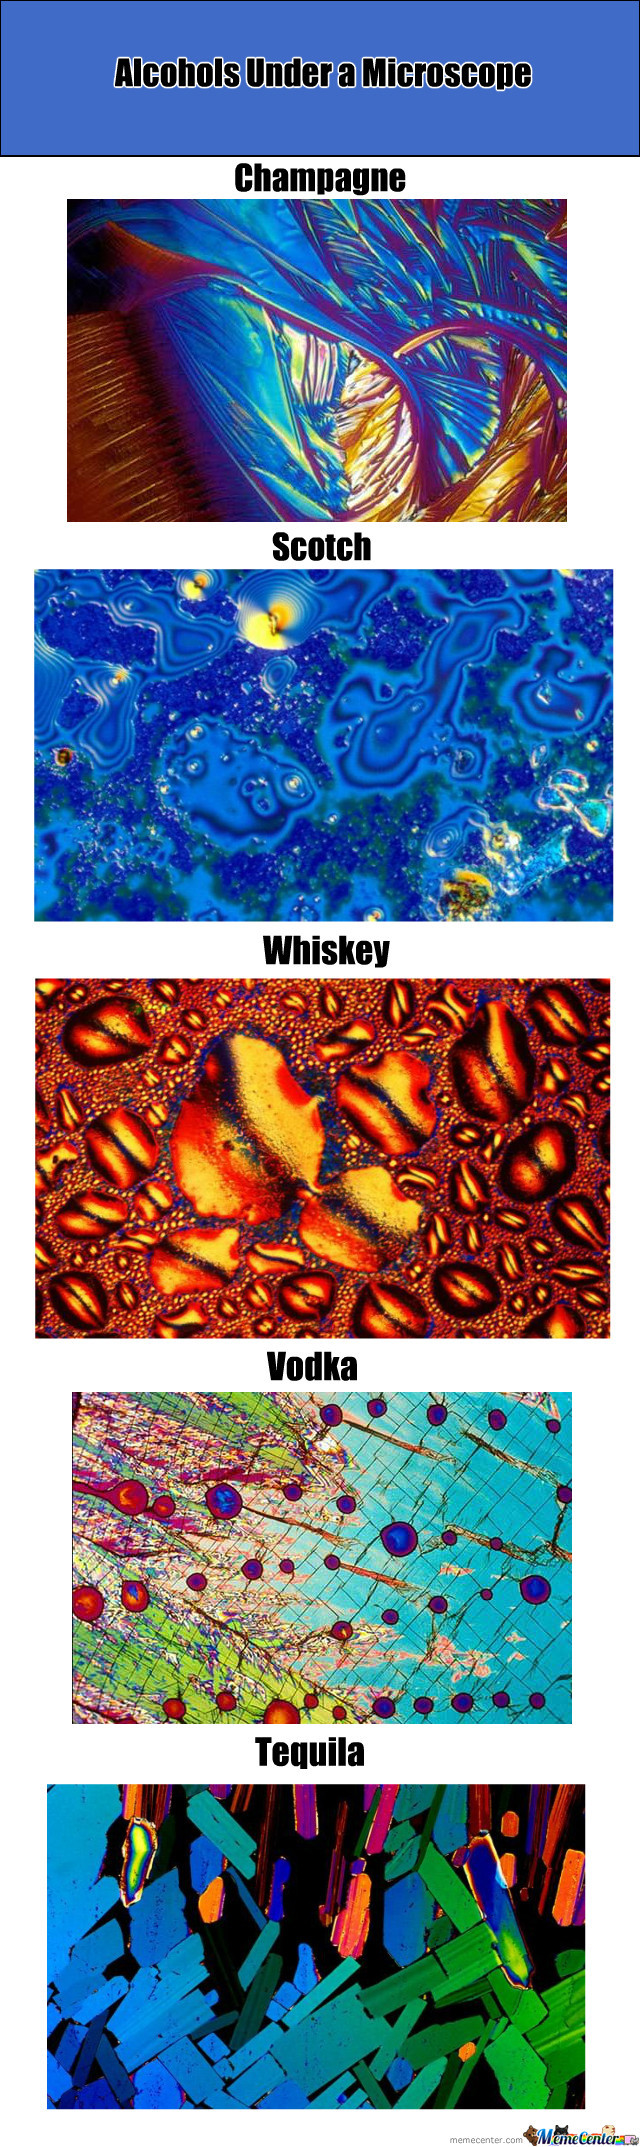 Alcohols Under A Microscope